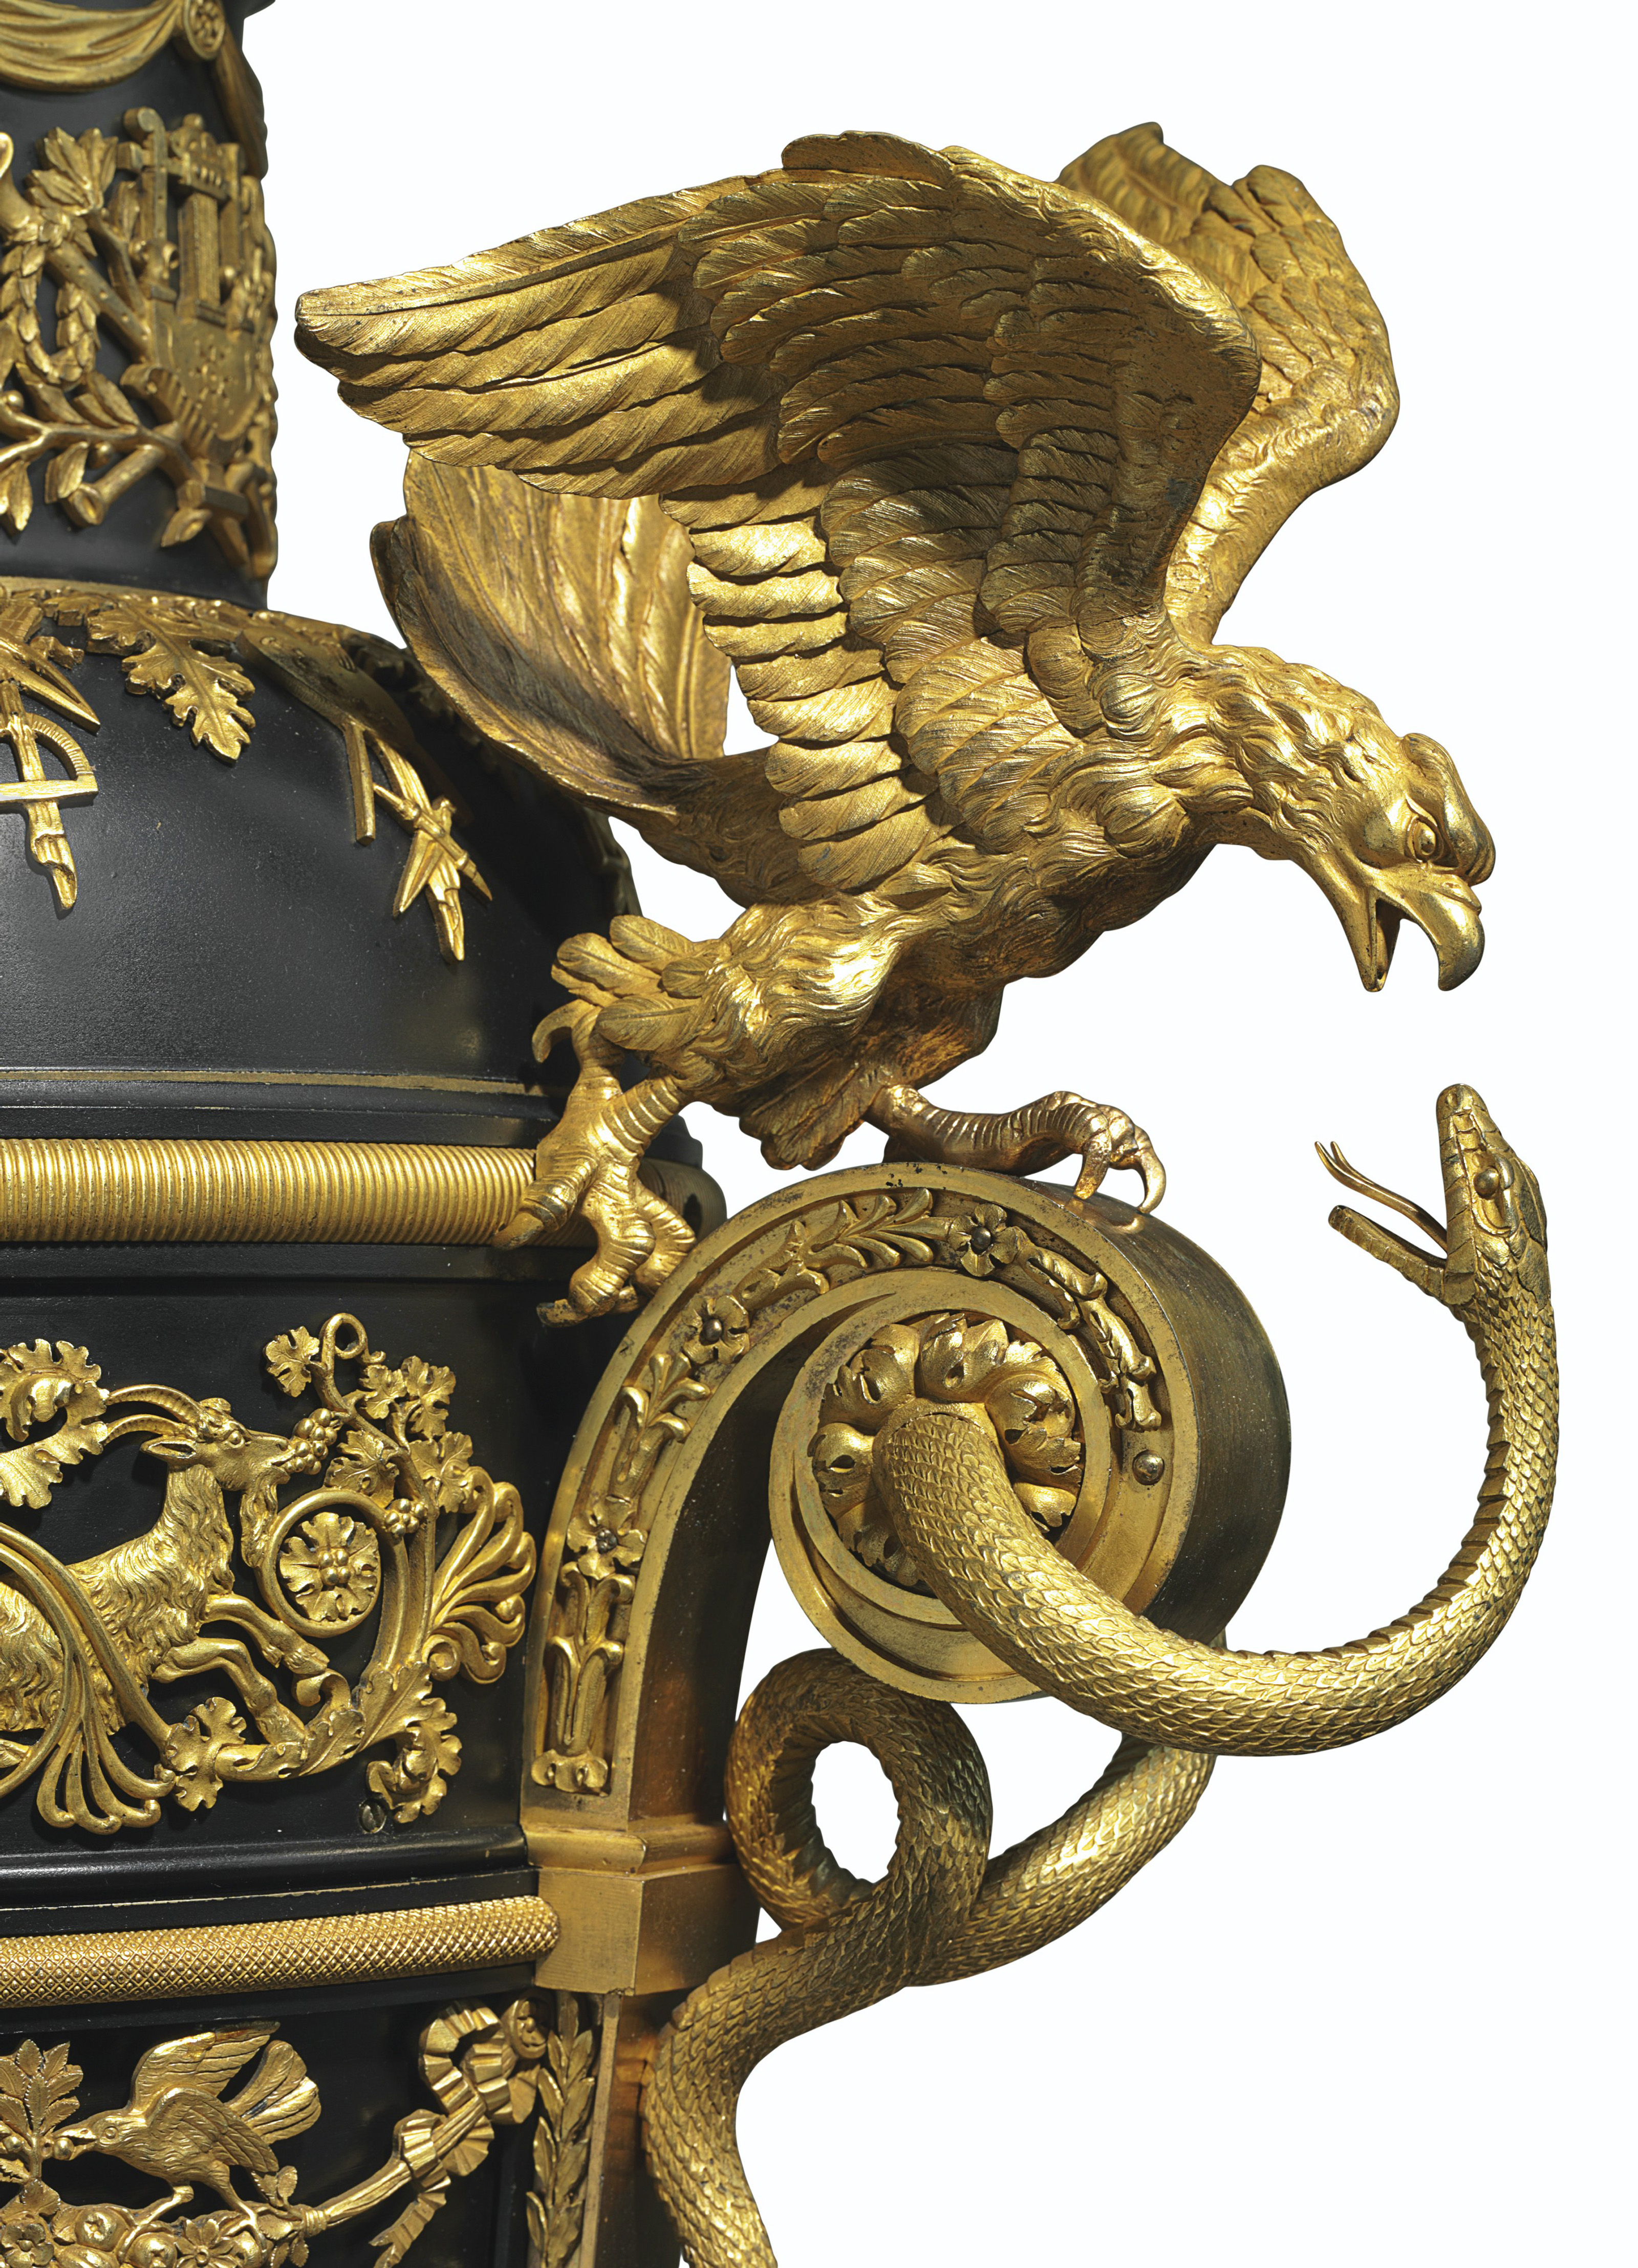 A MONUMENTAL EMPIRE ORMOLU AND PATINATED BRONZE MUSICAL 'SINGING BIRD' AND AUTOMATON CLOCK